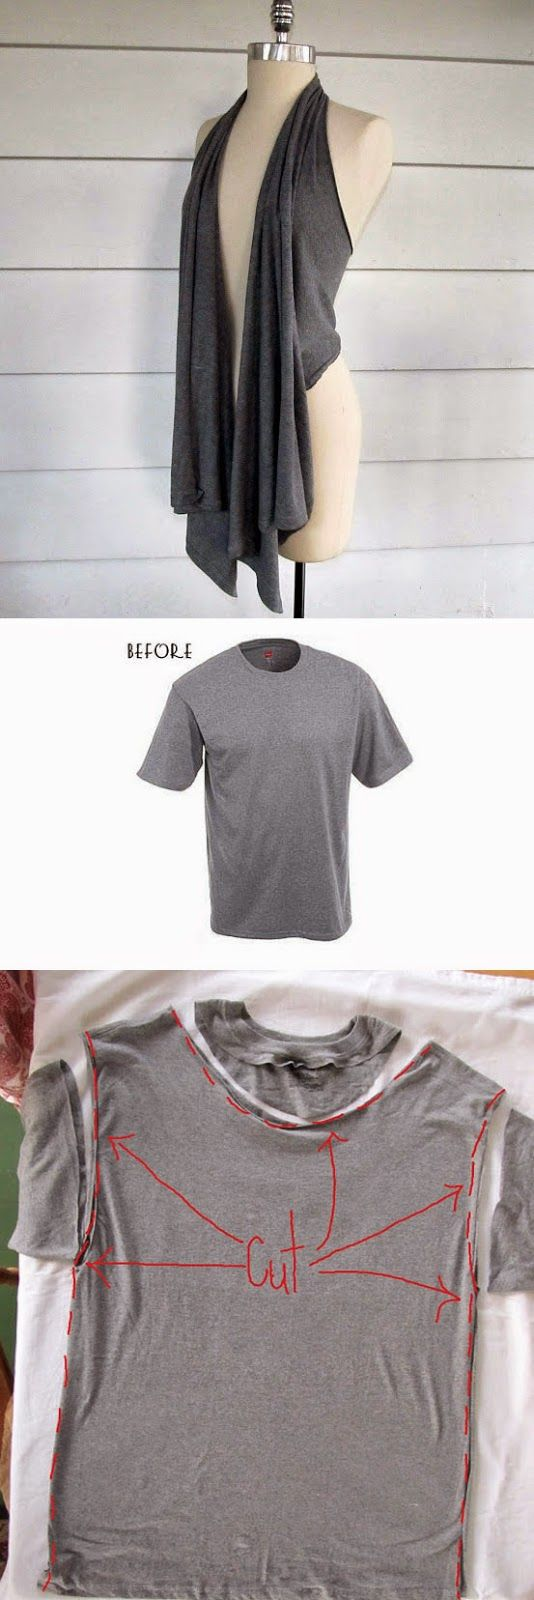 Laced Up Collar Sleeves   Needables:     Old T shirt  Plier Set  Jersy string  Scissors  Sewing Machine       via    No Sew Slashed Tee  ...